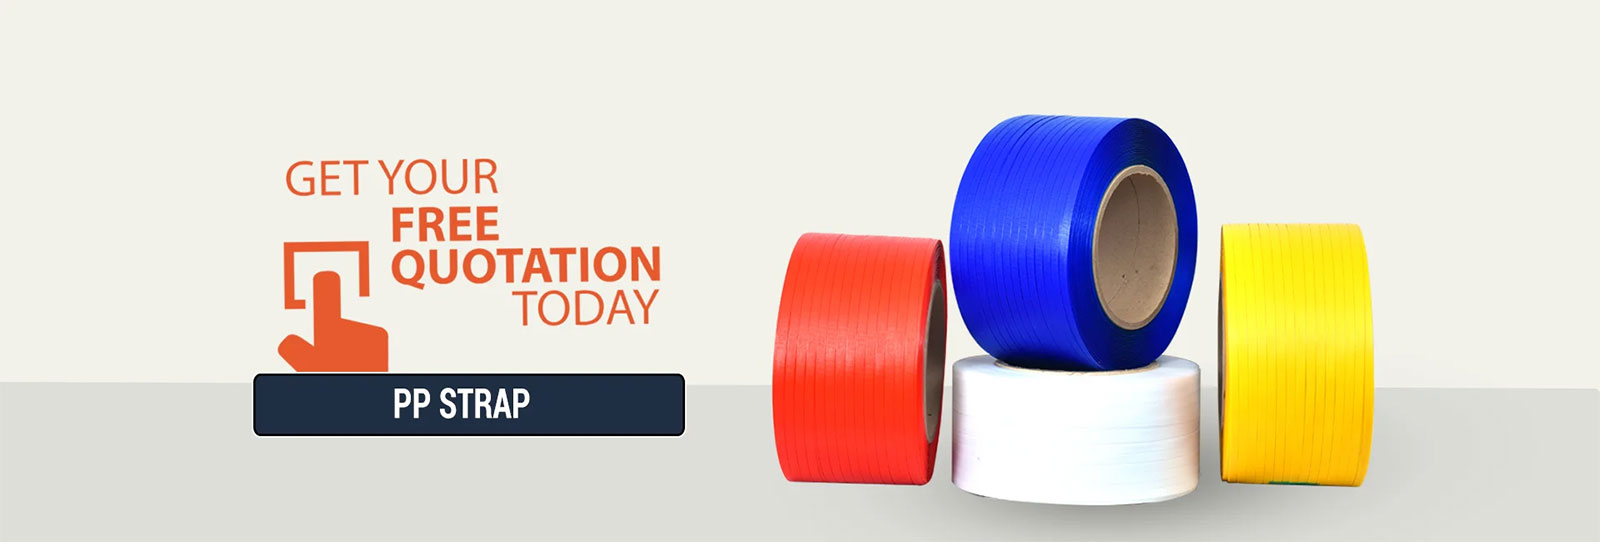 PP Strap, PP Strapping Manufacturer, Supplier, Ahmedabad, India